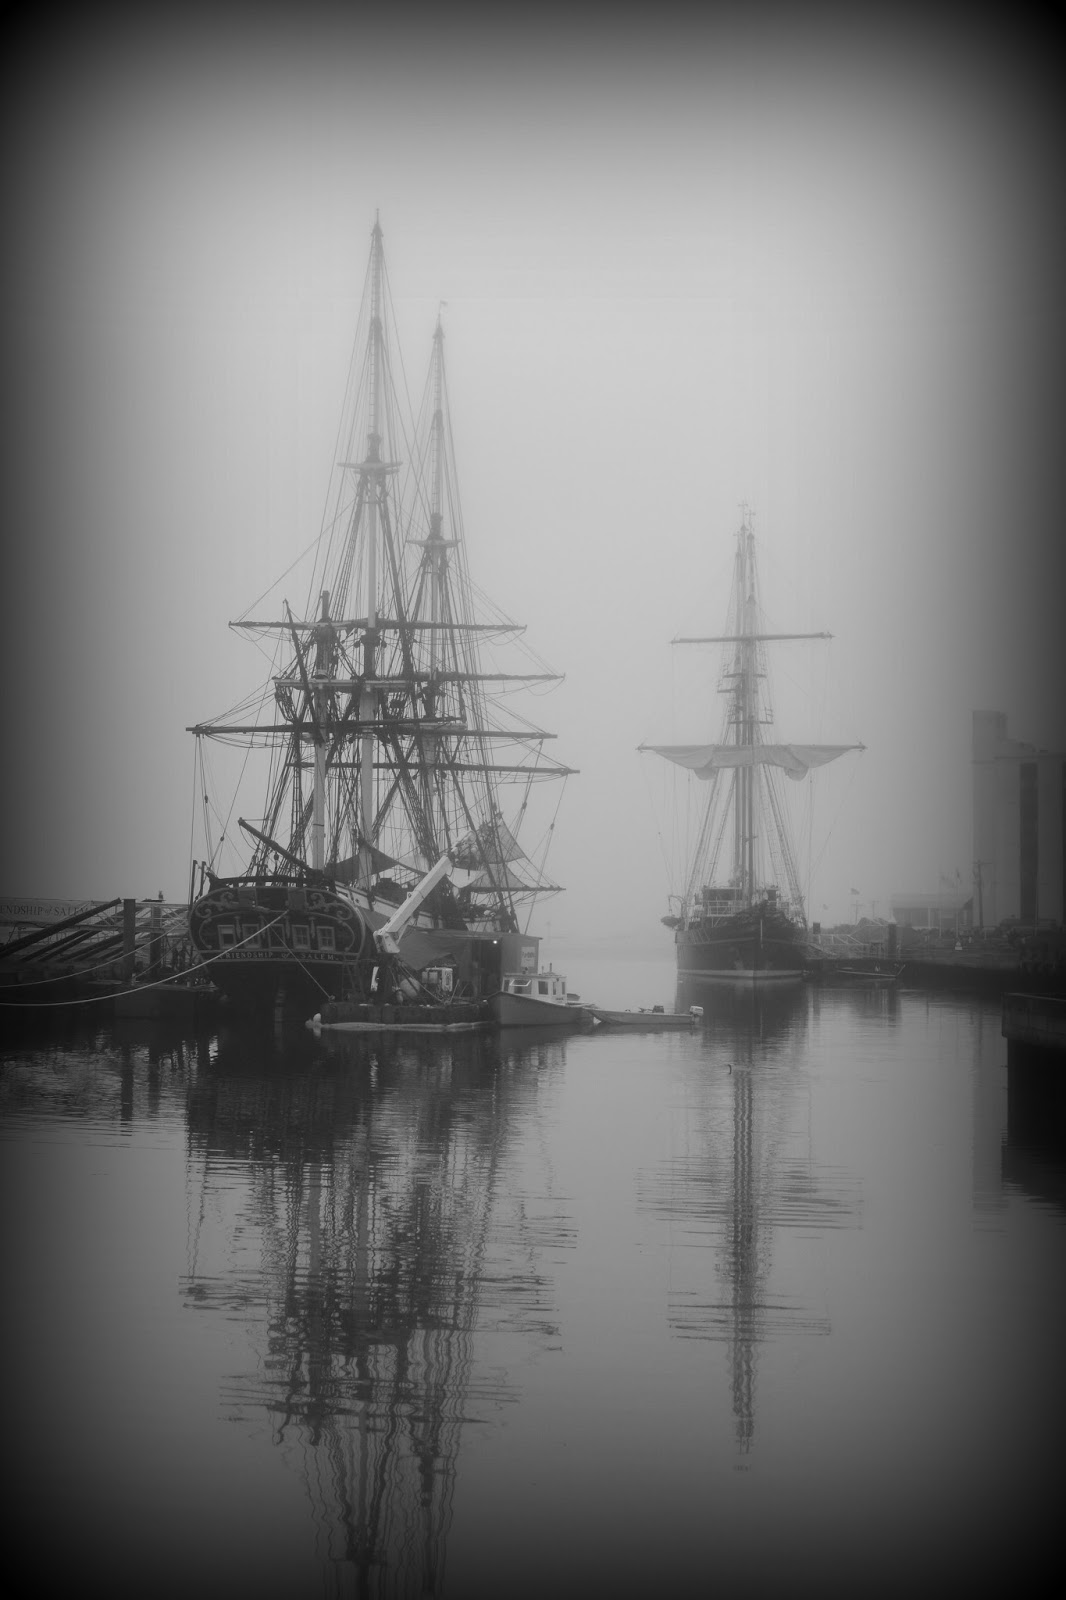 ship, friendship, peace, fog, salem, wharf, sail, sailing, friendship of salem, peacemaker